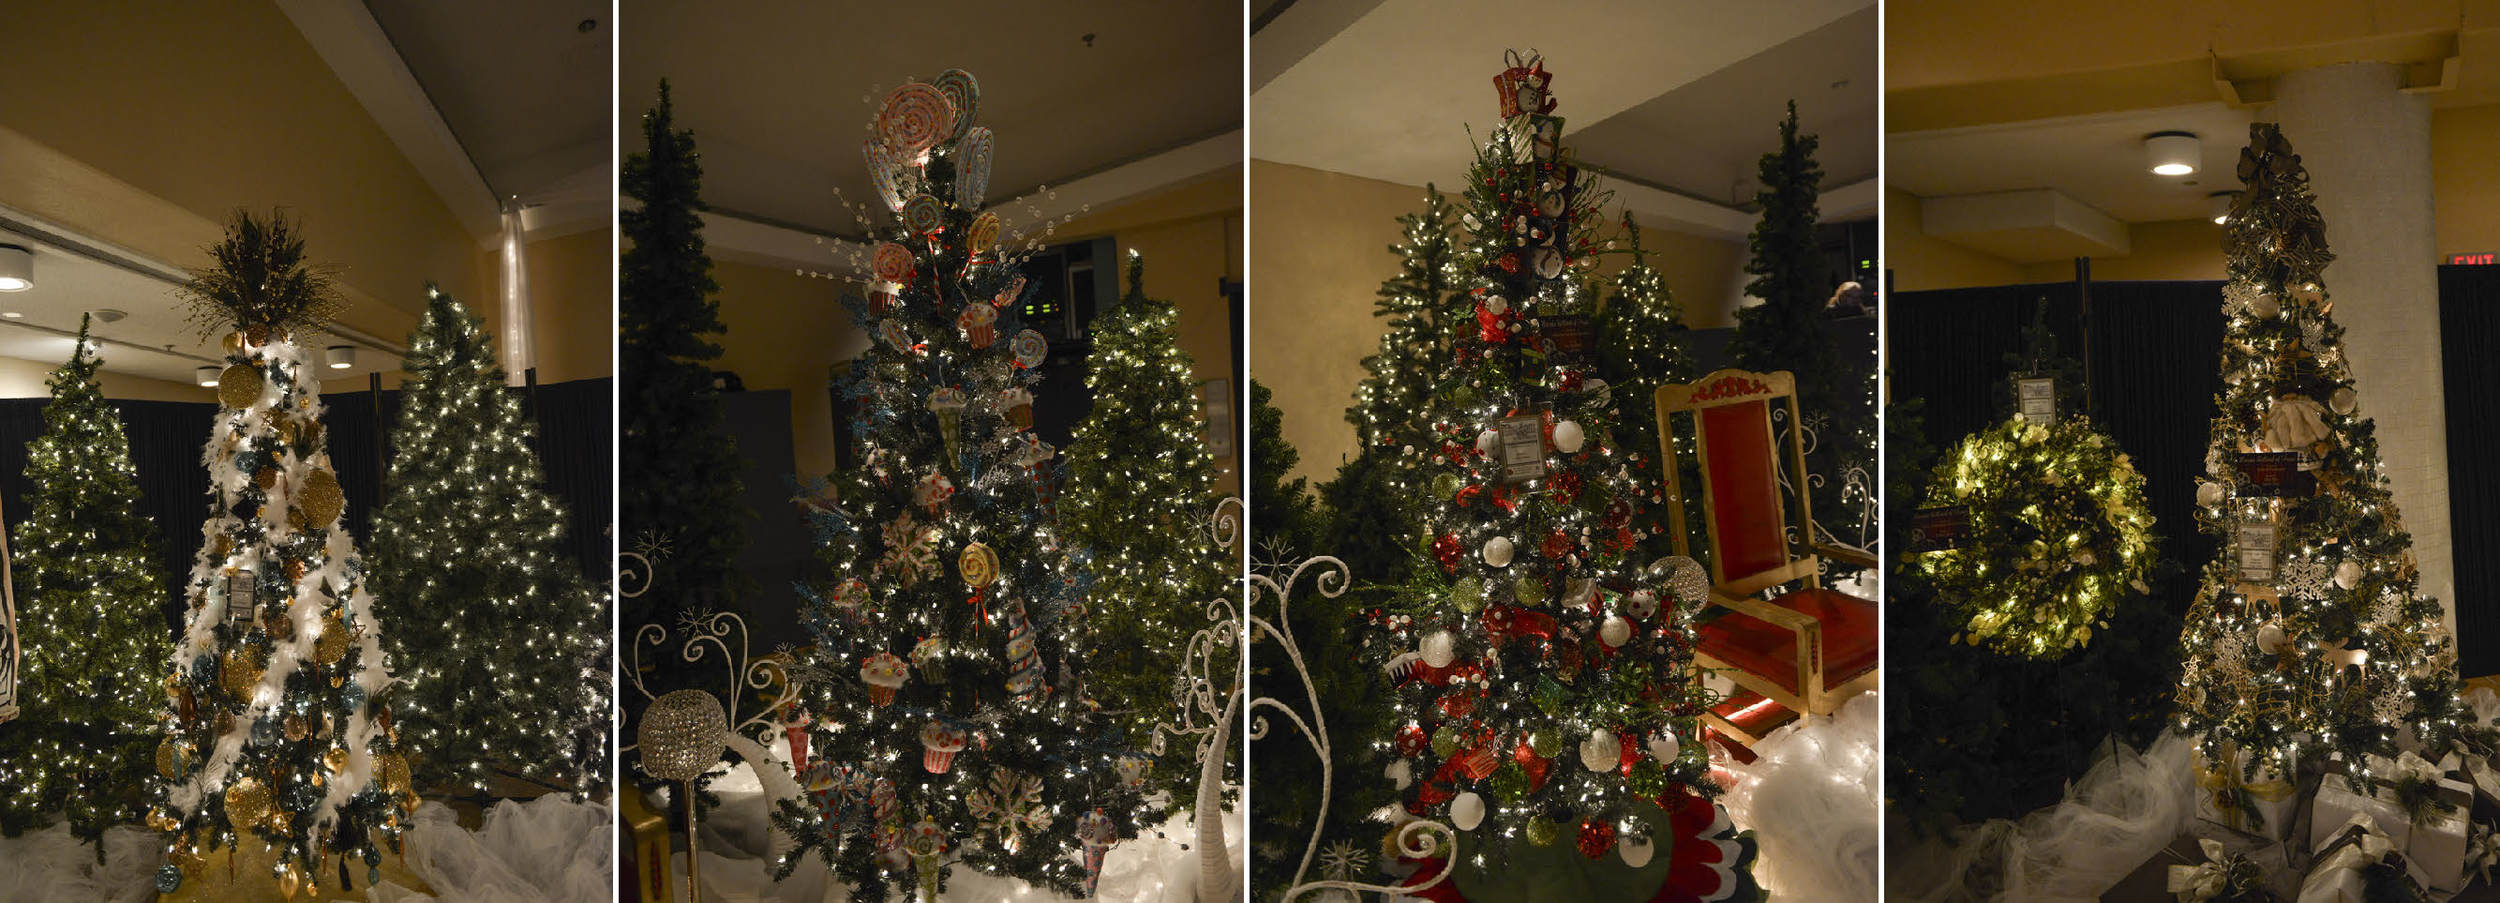 Festival of the trees_Page_12.jpg